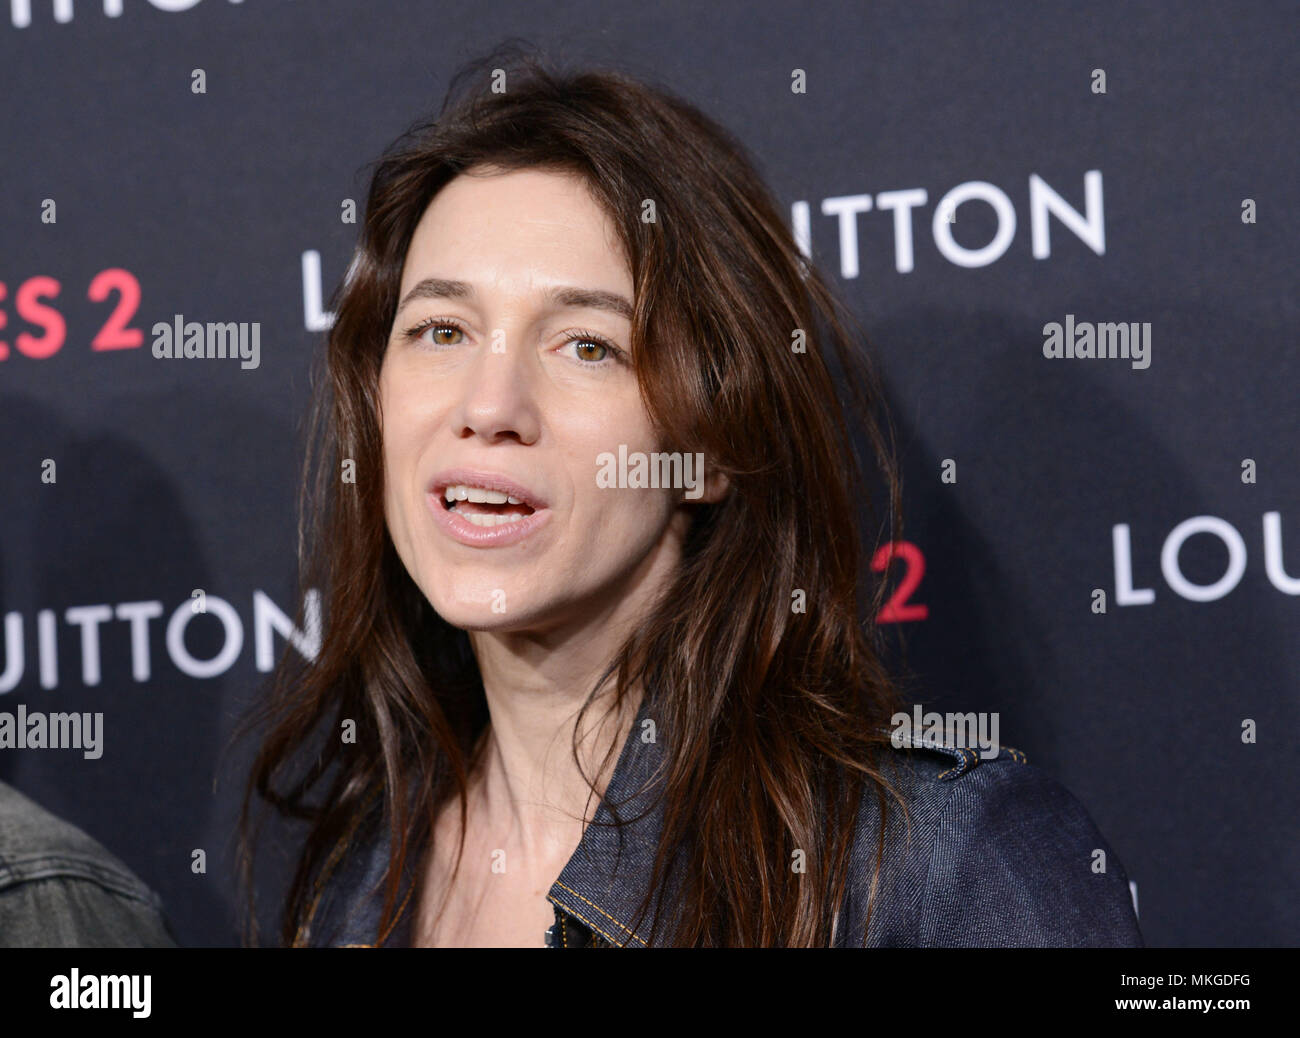 Charlotte Gainsbourg 029 at  the Louis Vuitton Series 2 exhibition  at 1135 north Highland in Los Angeles.  February 5, 2015Charlotte Gainsbourg 029  Event in Hollywood Life - California,  Red Carpet Event, Vertical, USA, Film Industry, Celebrities,  Photography, Bestof, Arts Culture and Entertainment, Topix Celebrities fashion / one person, Vertical, Best of, Hollywood Life, Event in Hollywood Life - California,  Red Carpet and backstage, USA, Film Industry, Celebrities,  movie celebrities, TV celebrities, Music celebrities, Photography, Bestof, Arts Culture and Entertainment,  Topix, headsho - Stock Image